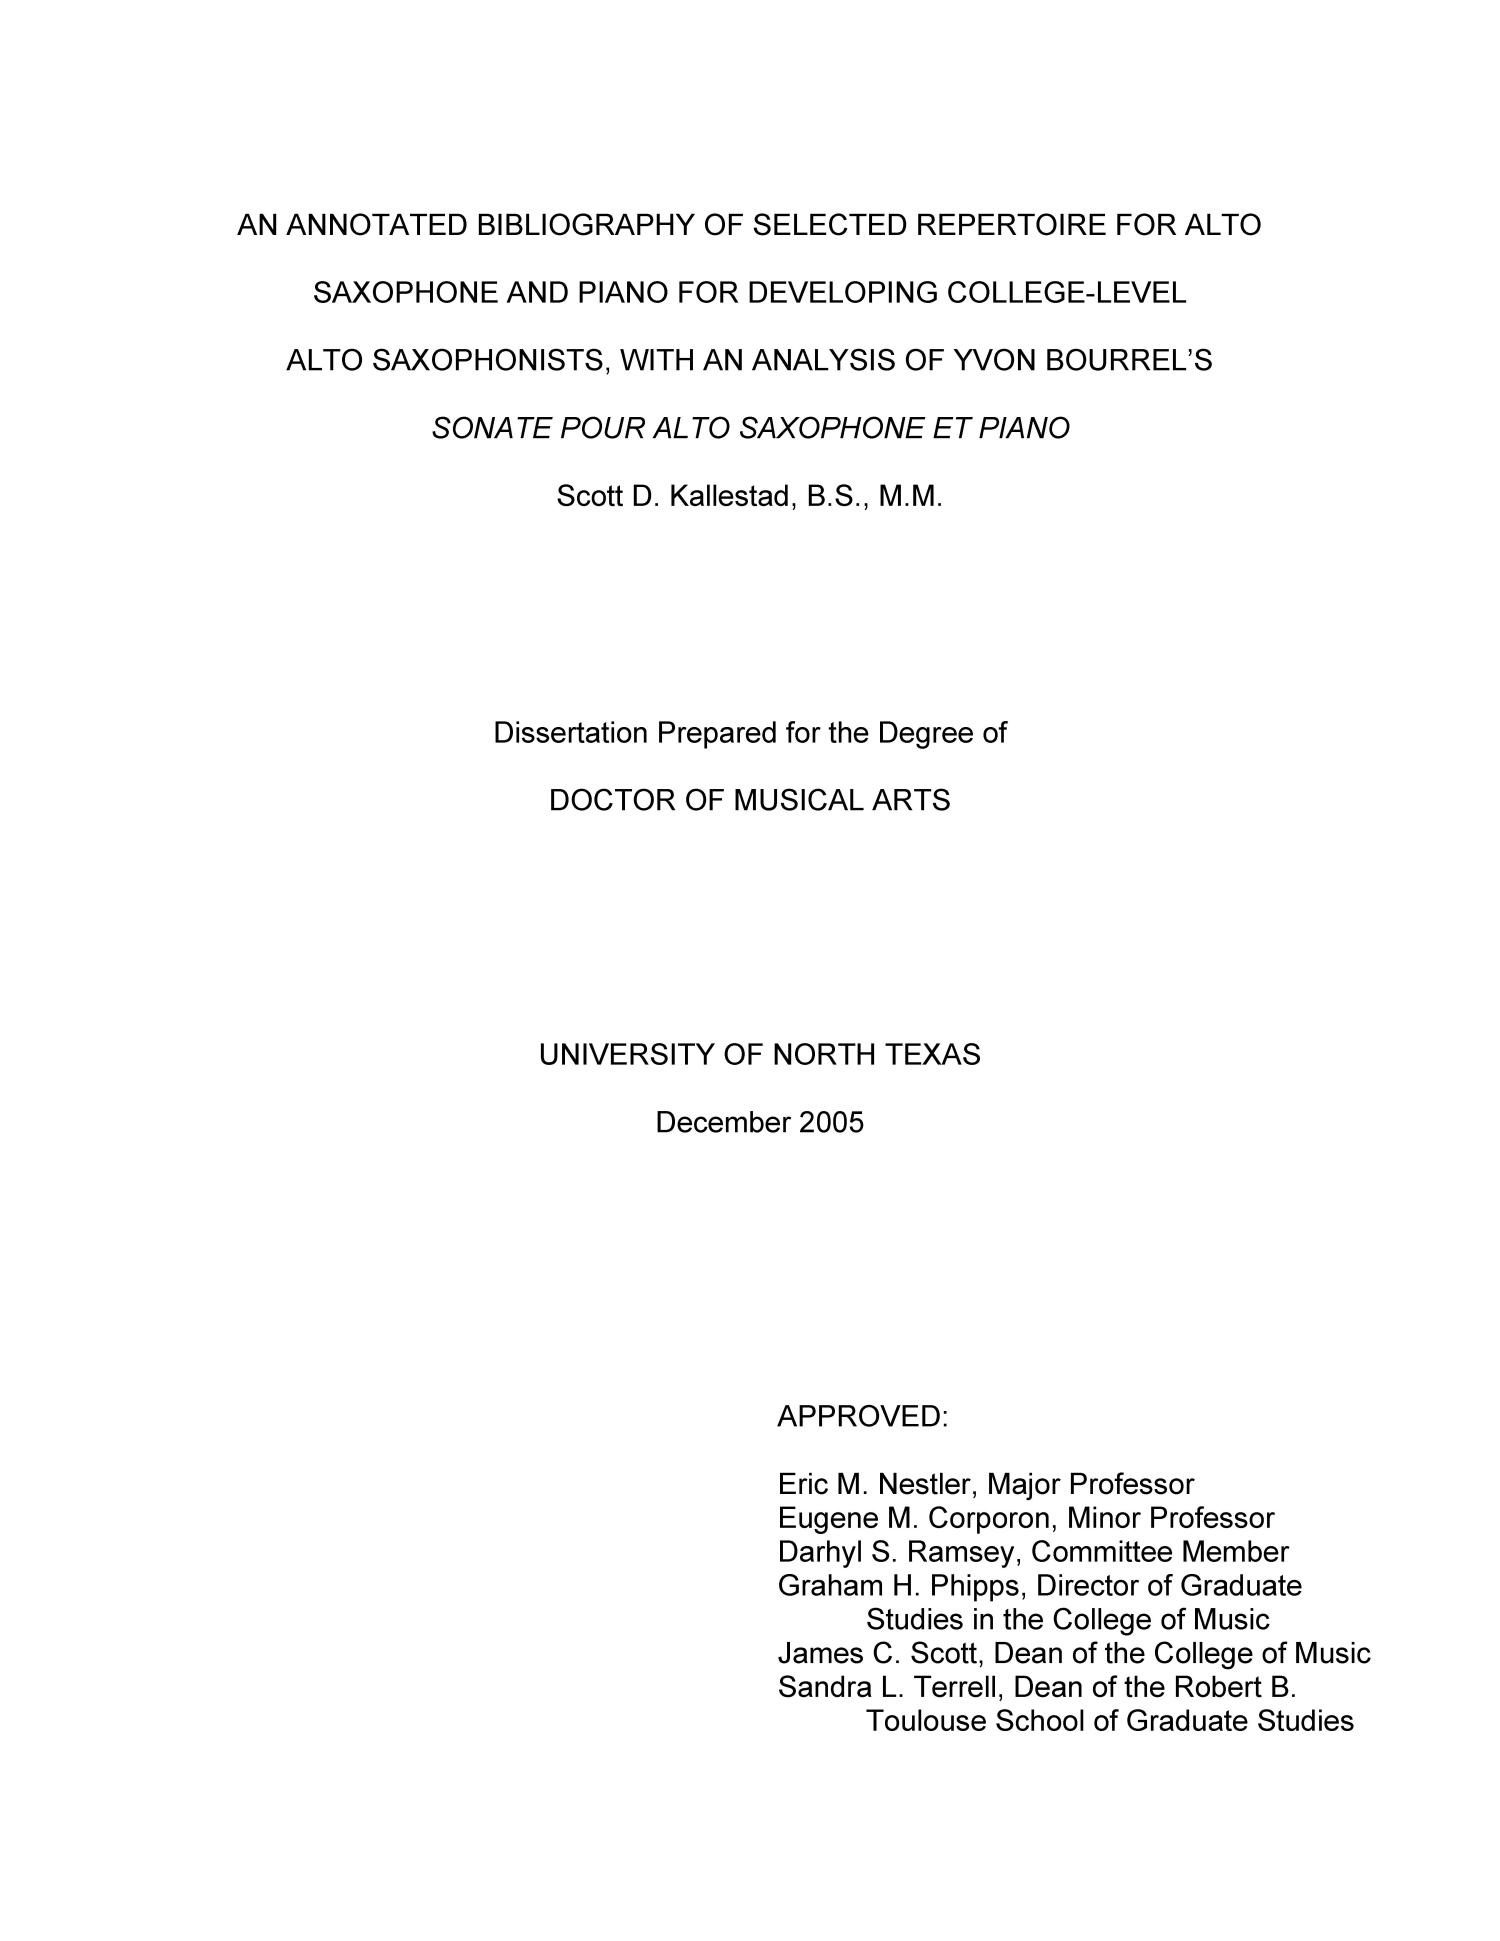 dissertation doctoral doctoral dissertation example